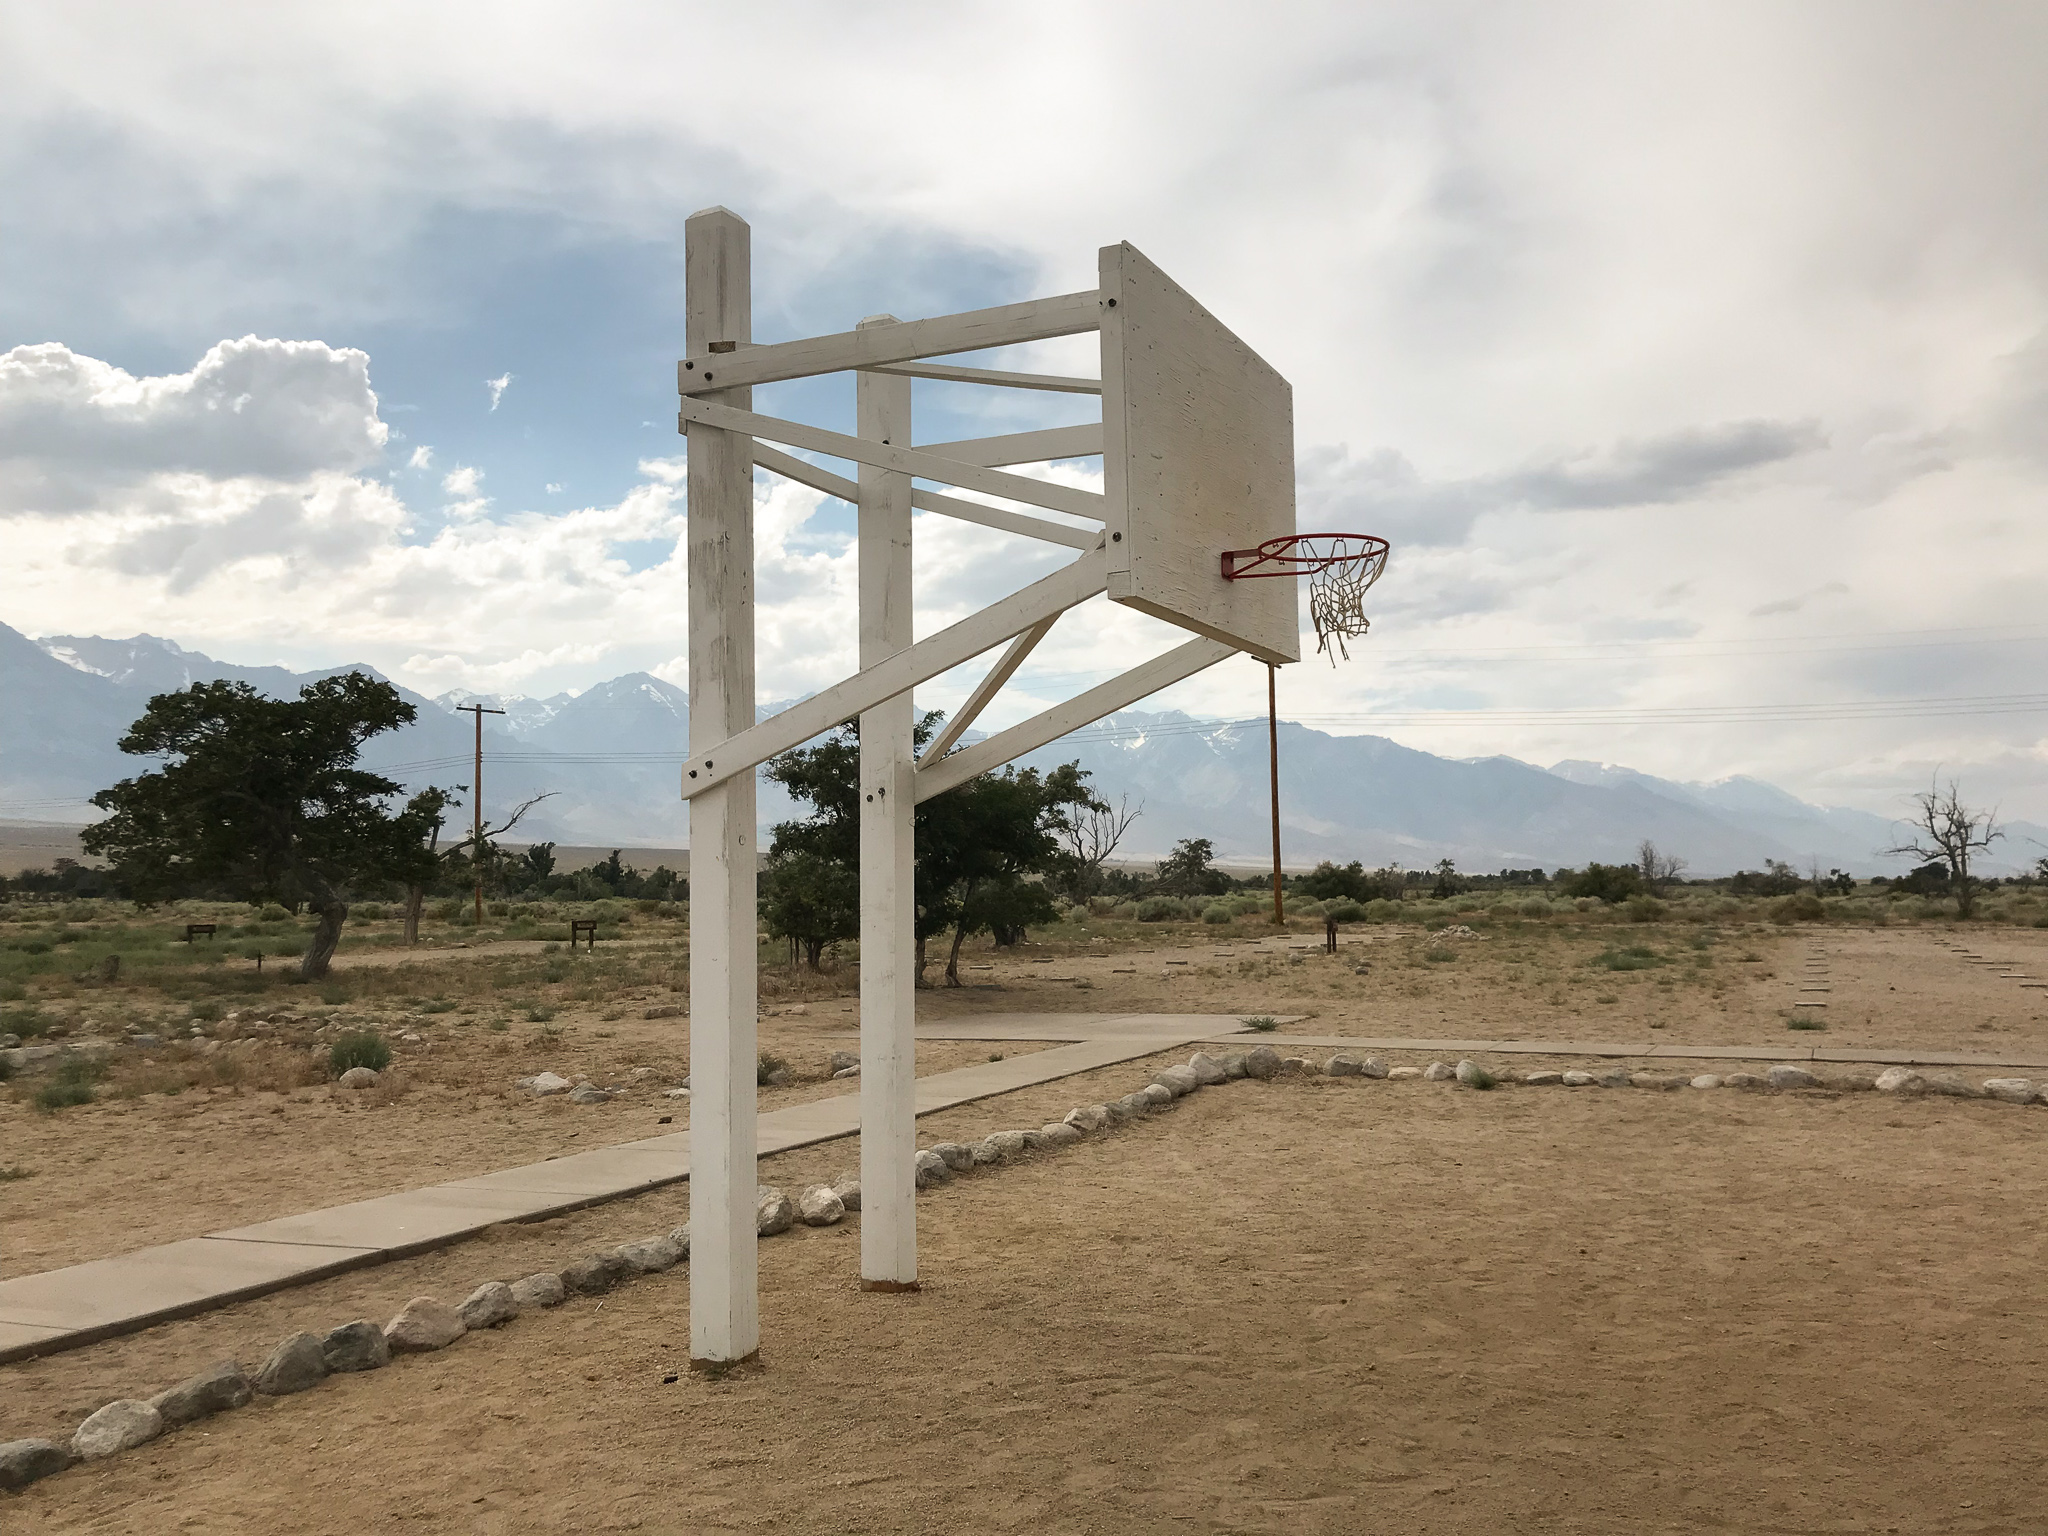 Basketball Courts in the United States